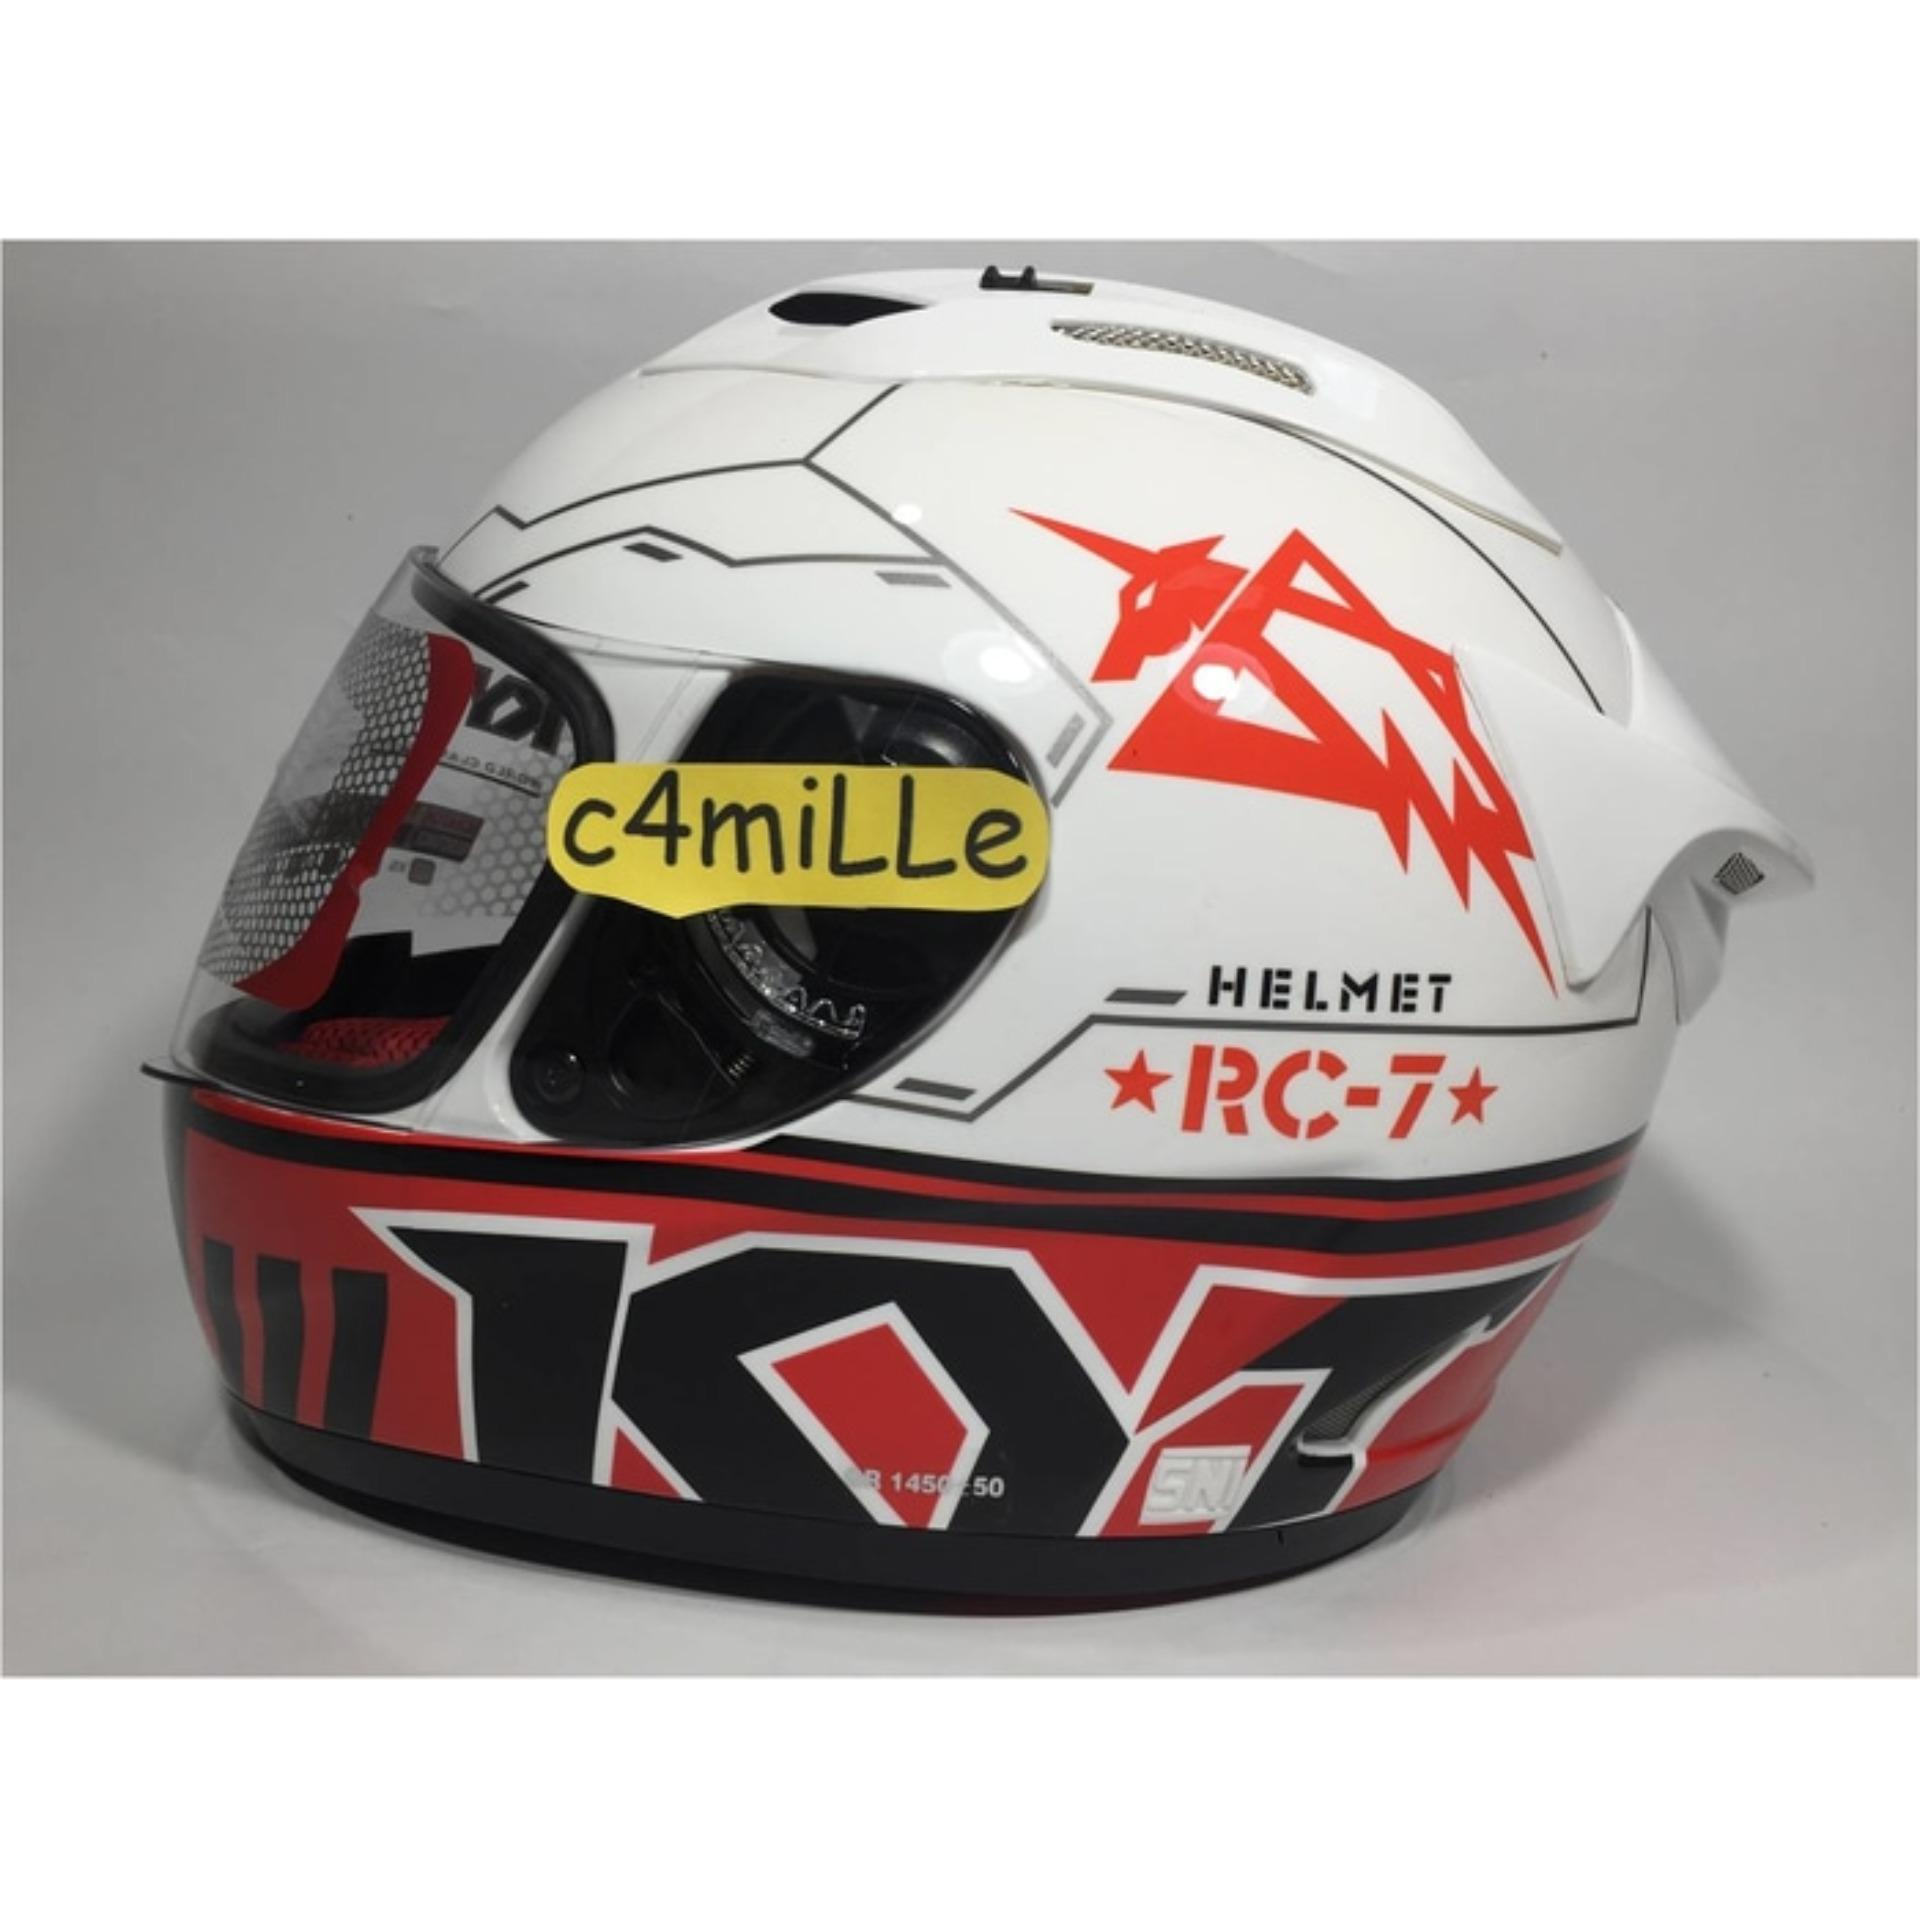 HELM KYT RC 7 RC7 MOTIF 11 WHITE BLACK RED FULL FACE